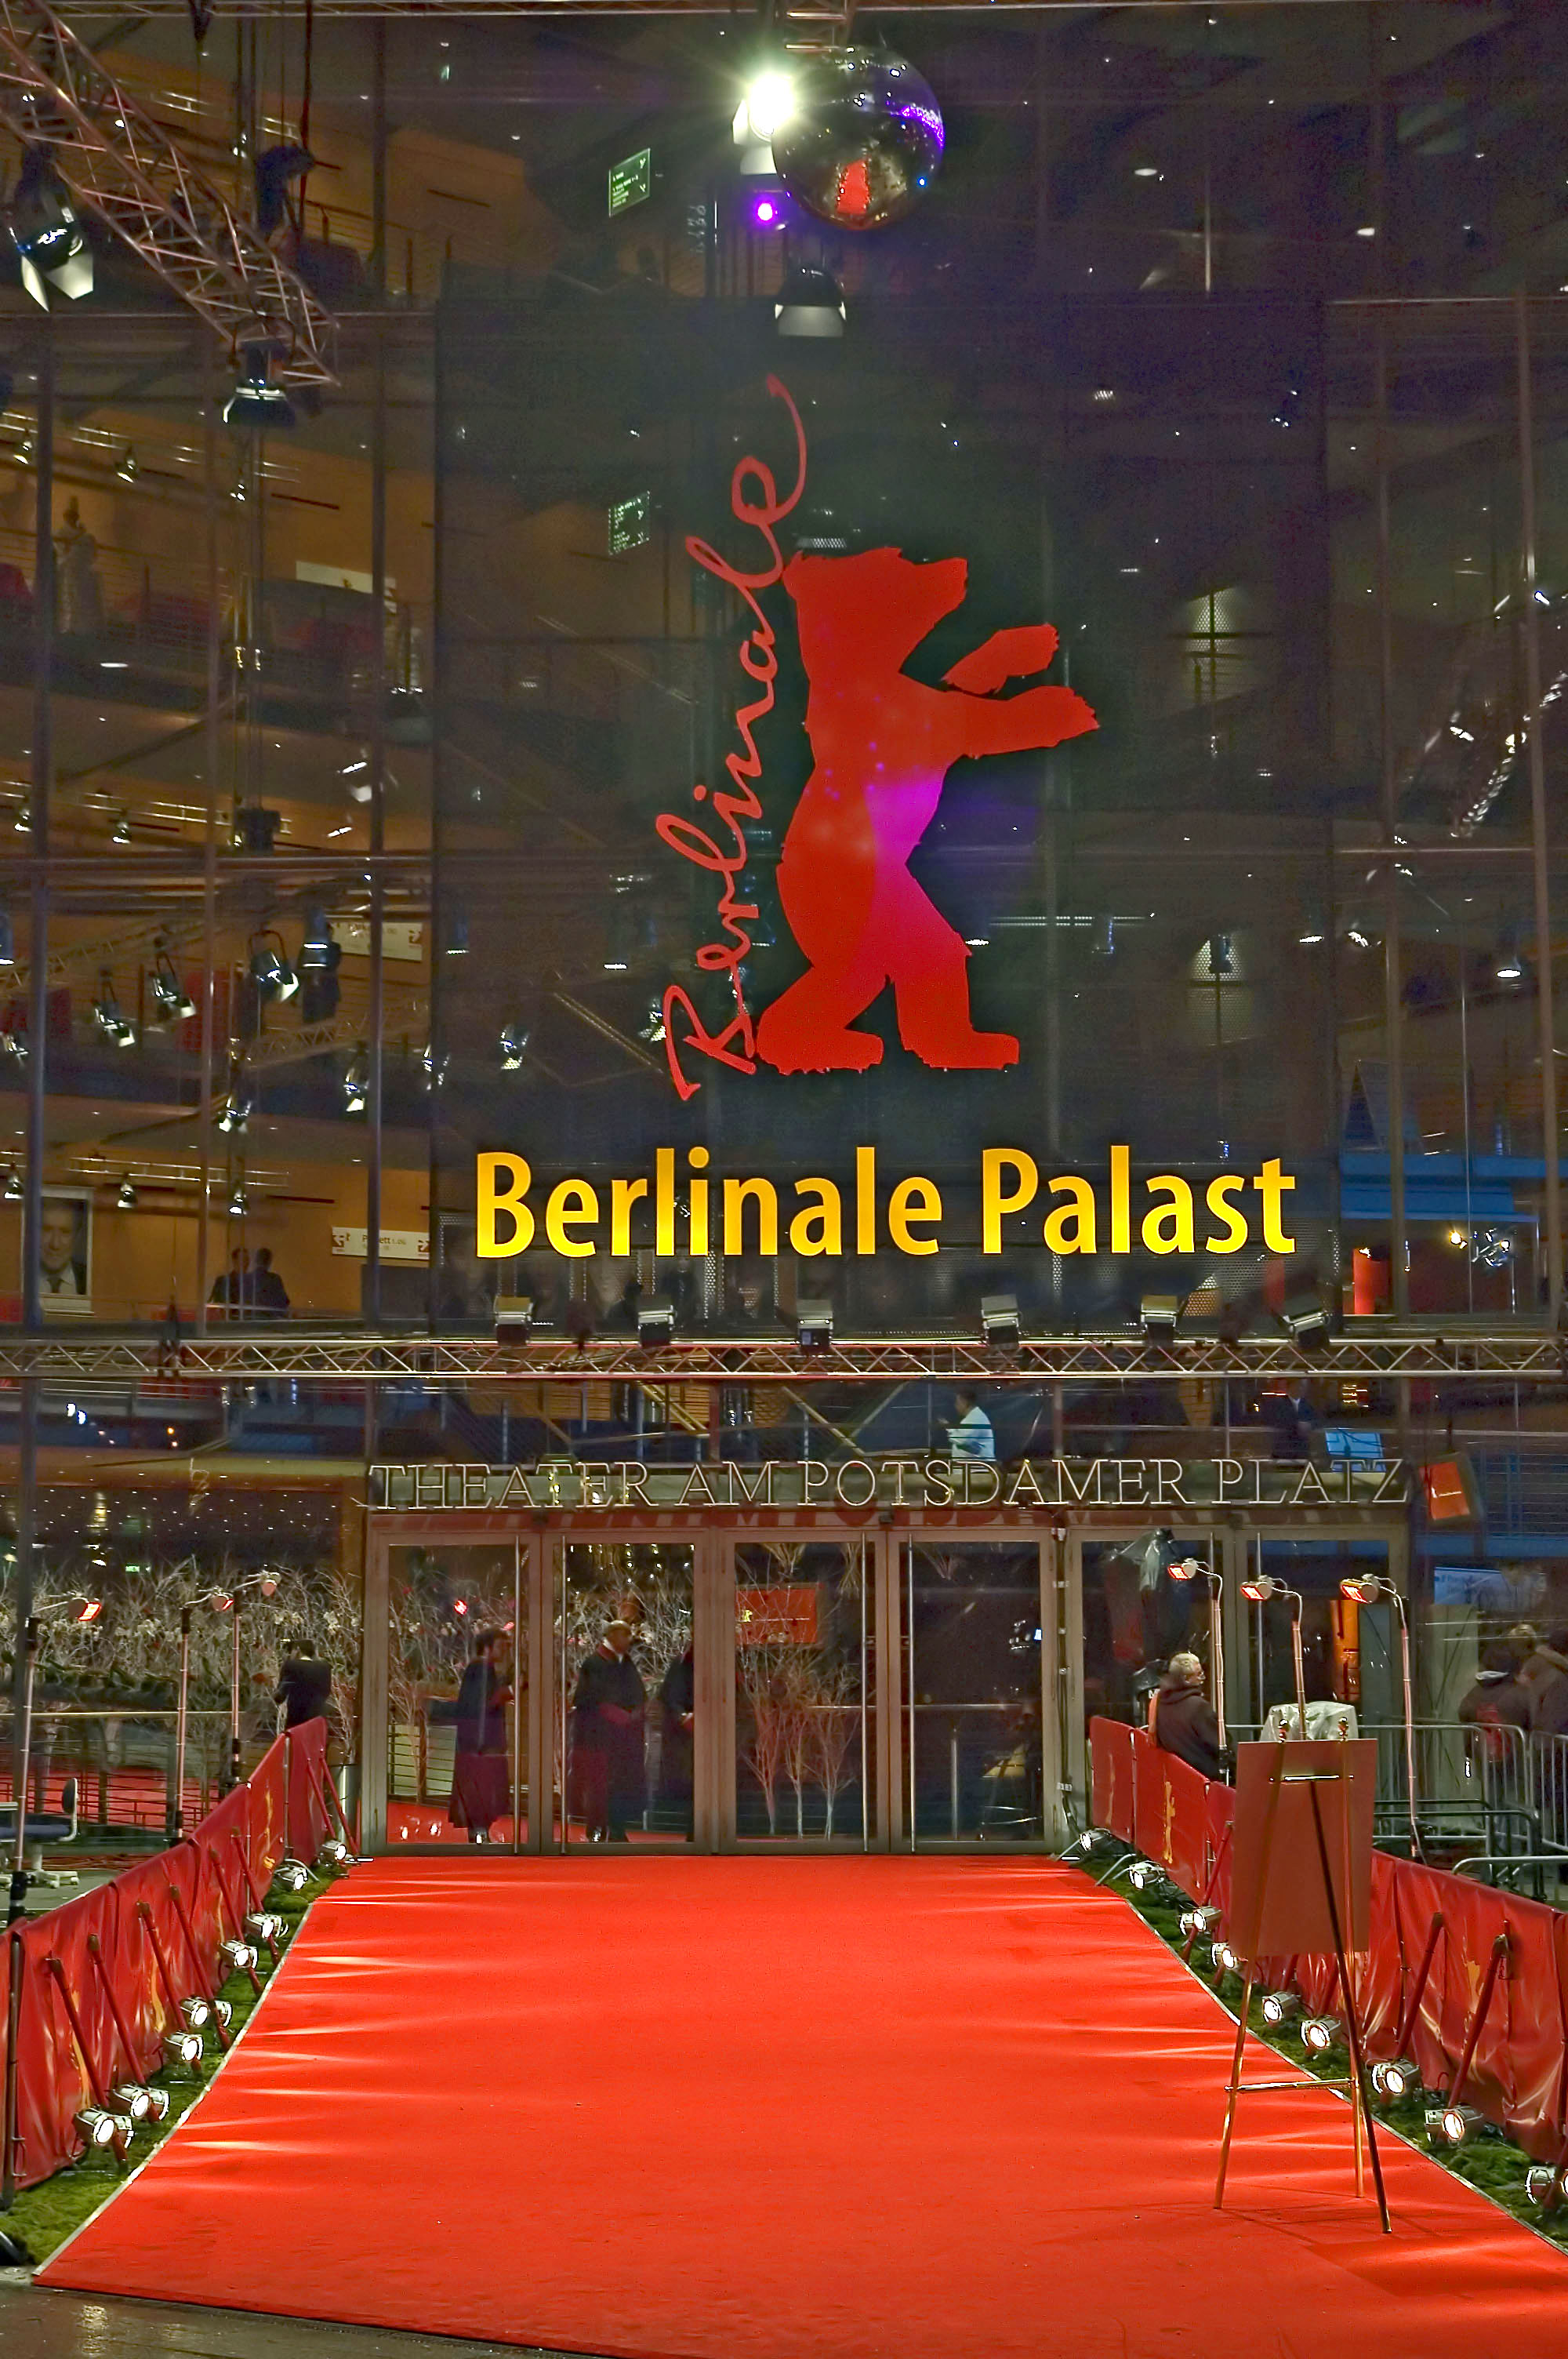 Berlinale Film Festival: German festivals